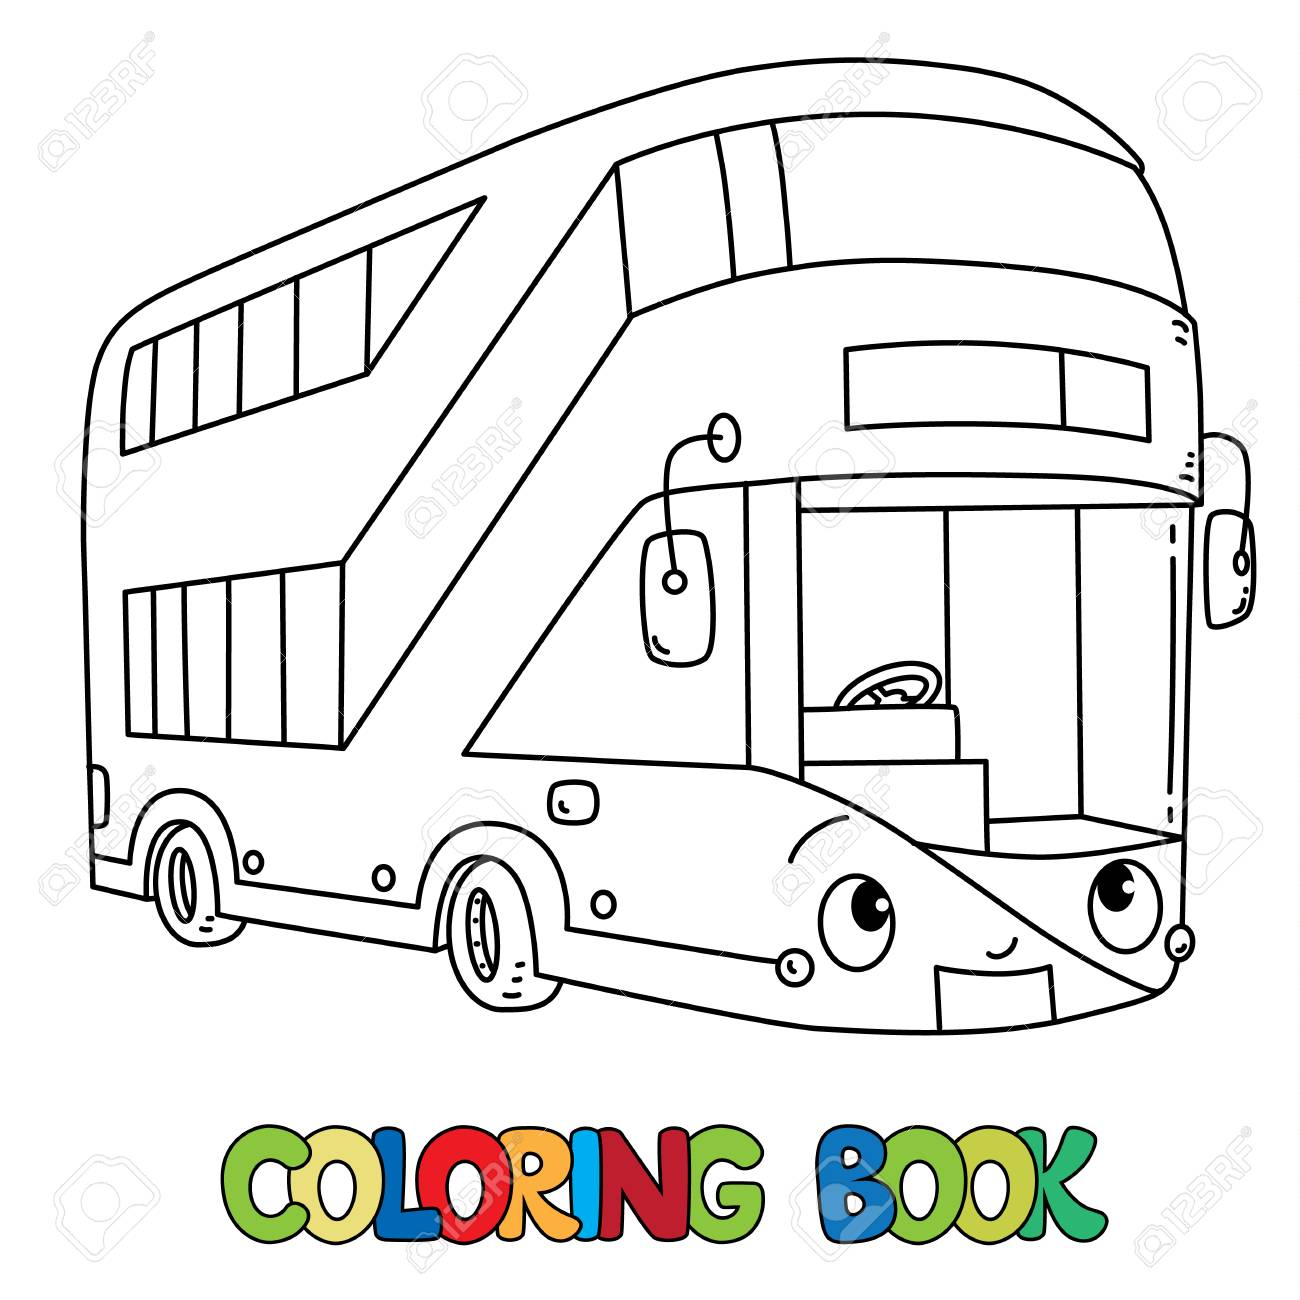 London Modern Double Decker Bus Coloring Book For Kids Small Royalty Free Cliparts Vectors And Stock Illustration Image 111803840